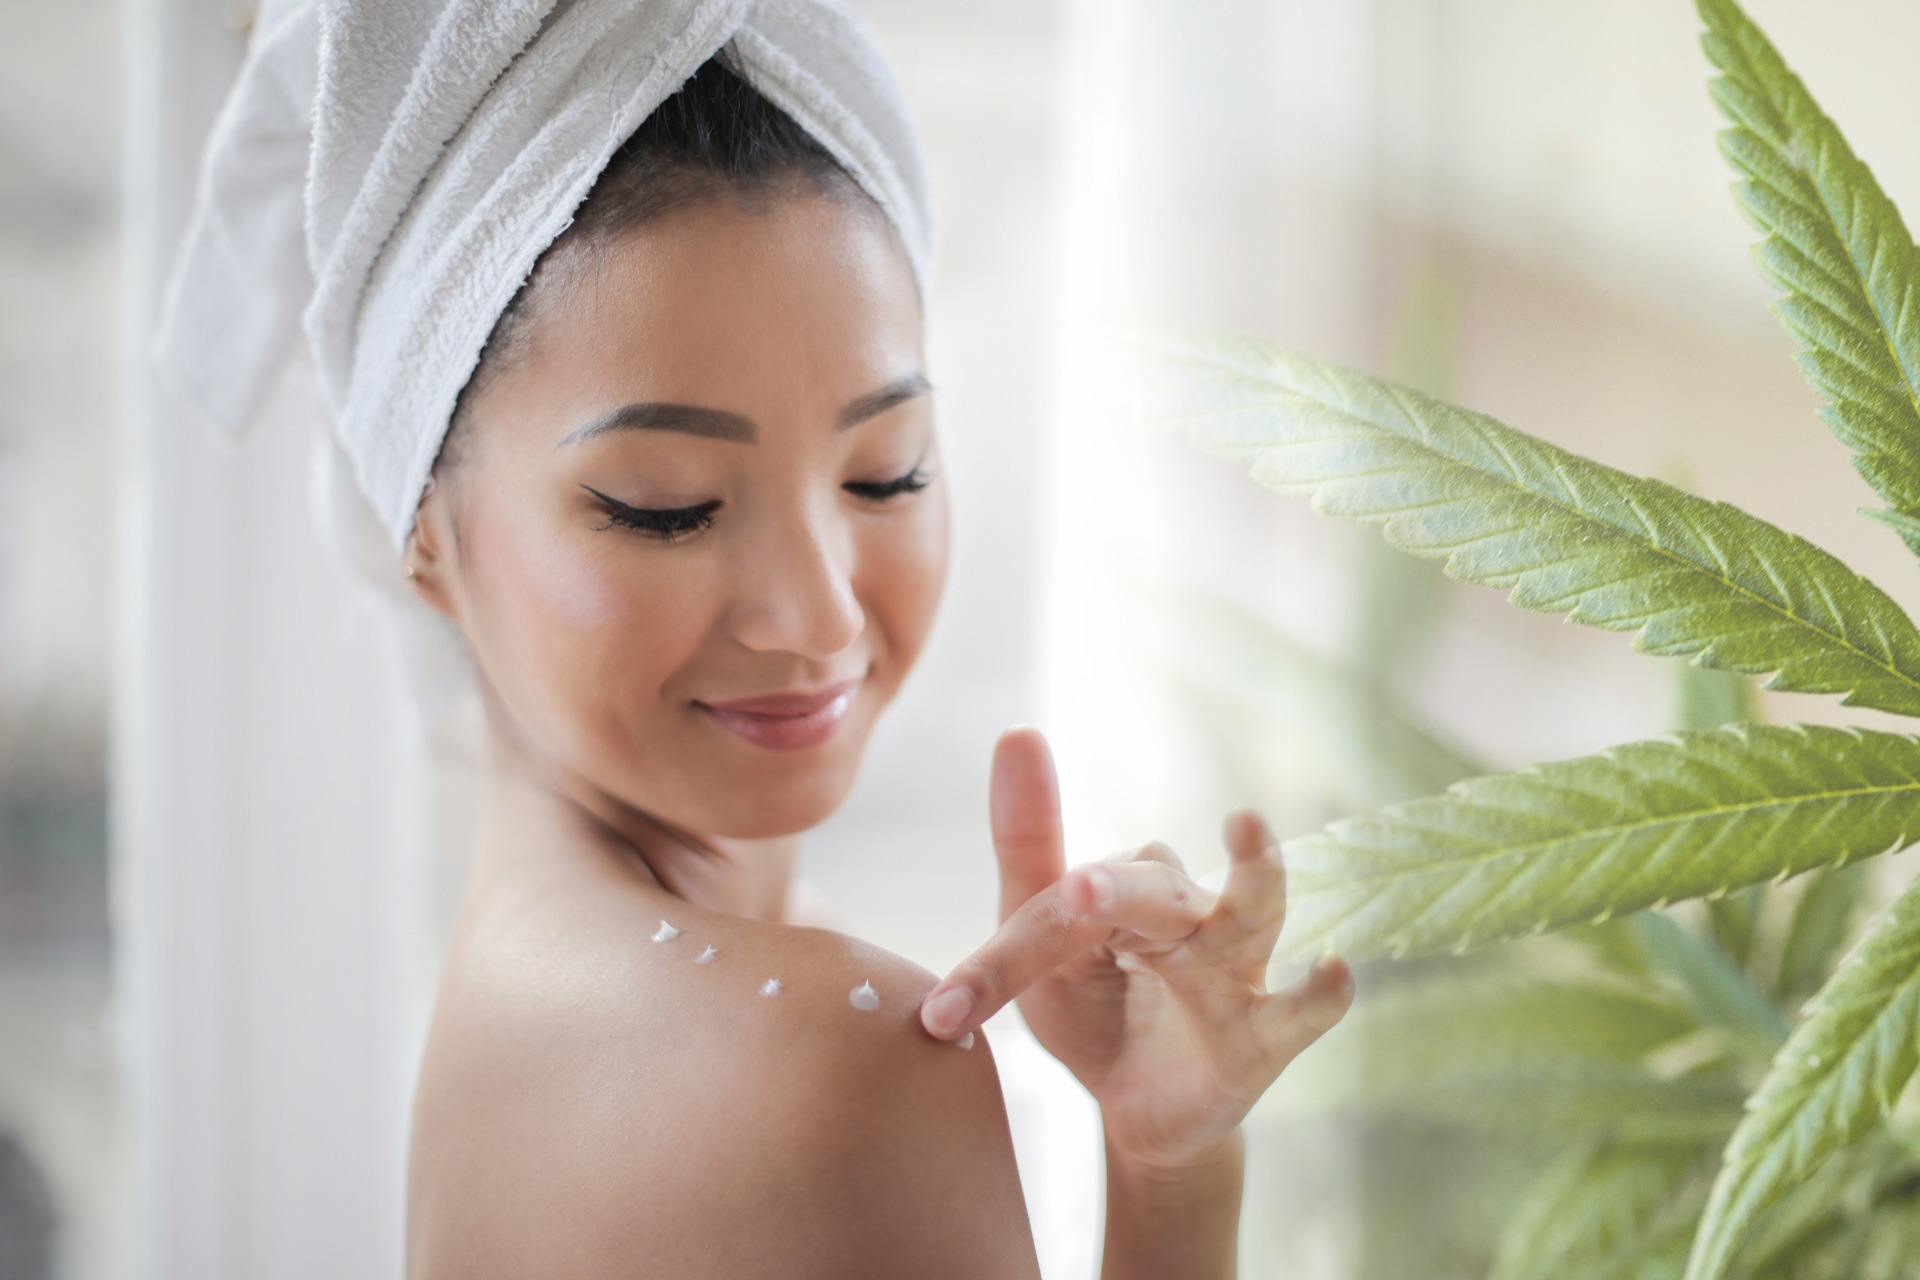 woman with towel on head putting on lotion on shoulders